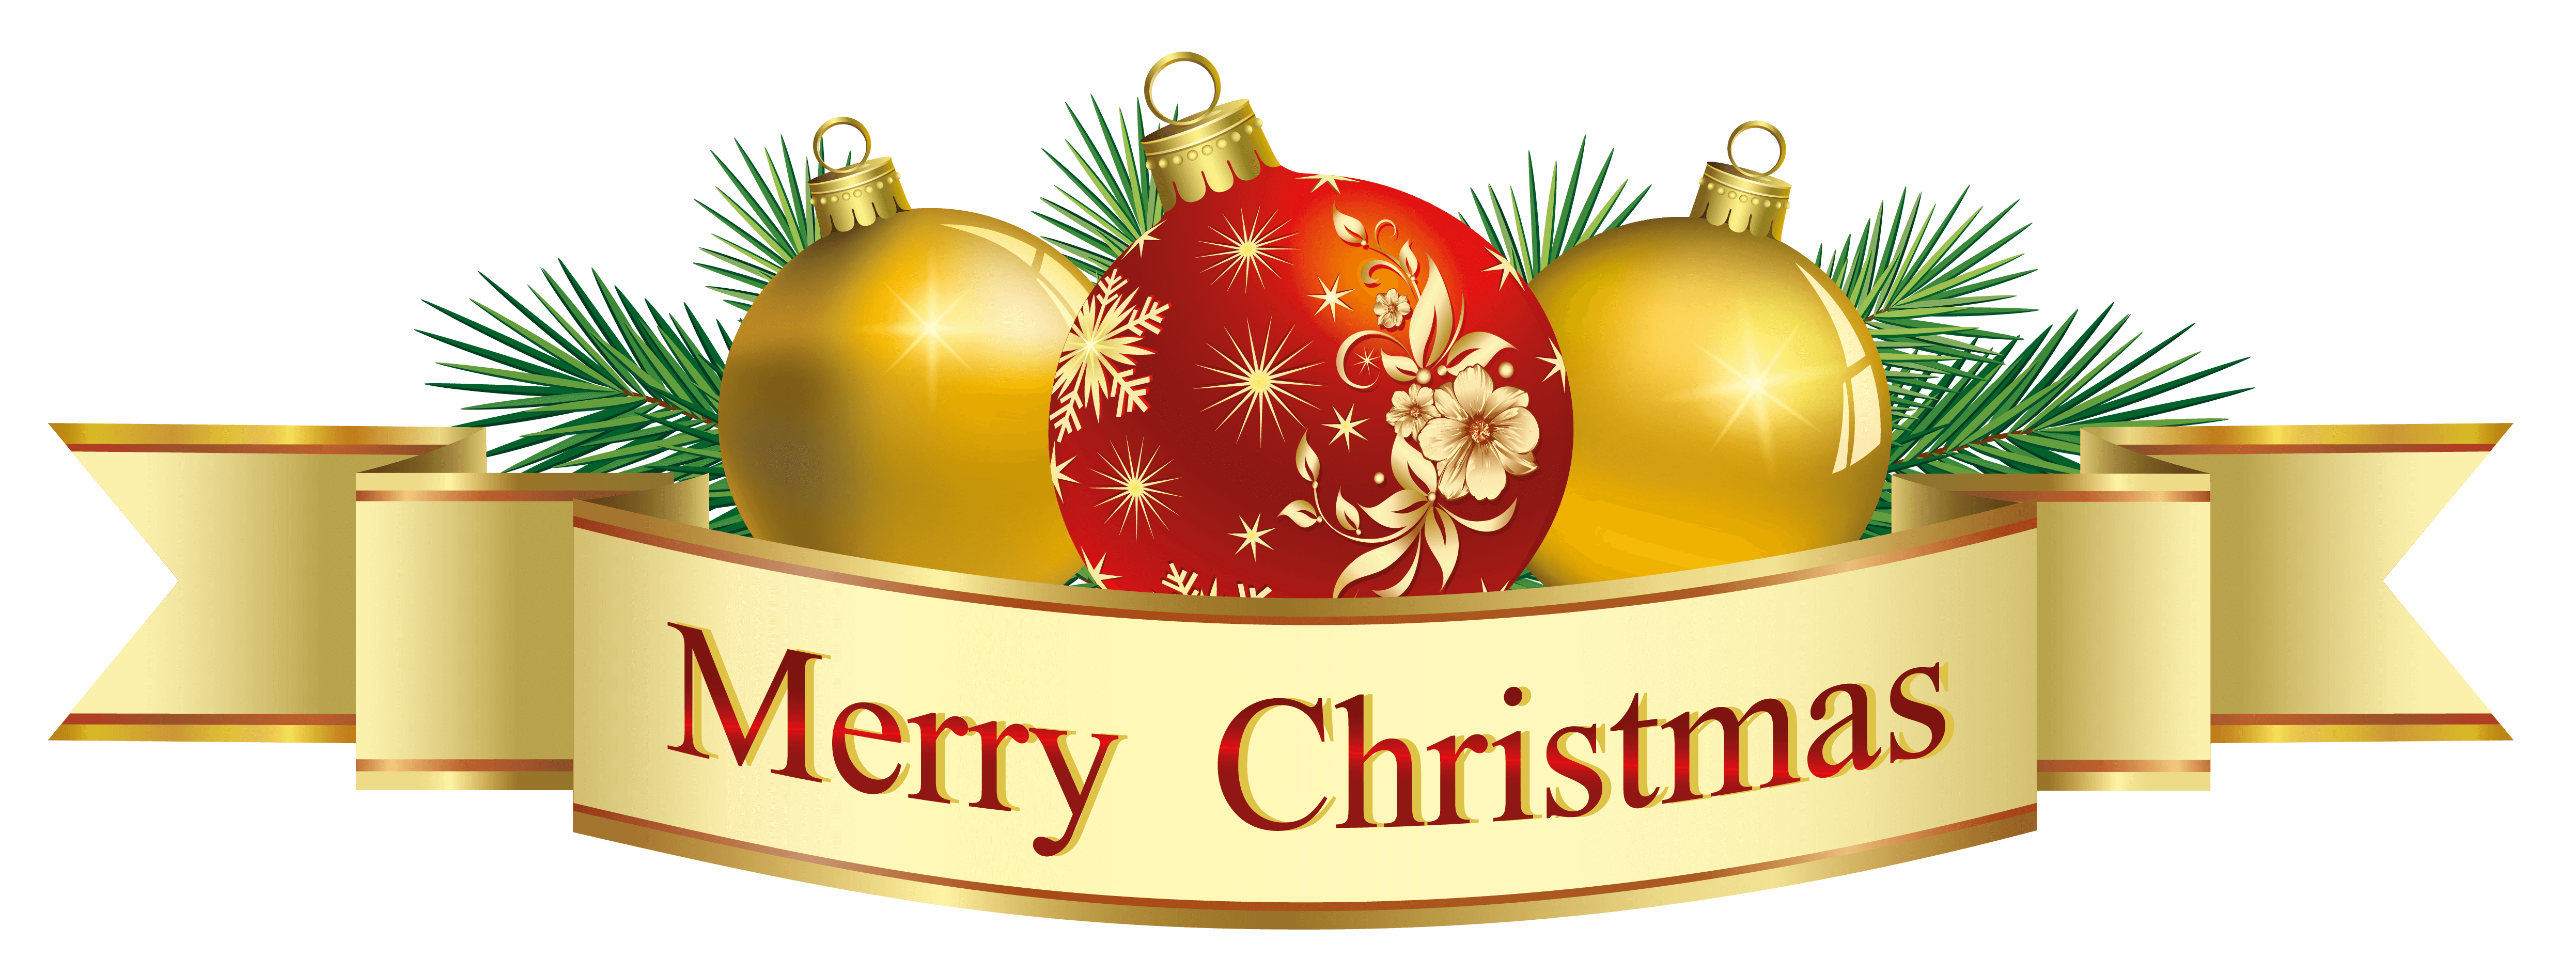 Merry Christmas and Happy New Year!! | Human Resources News | SESCO ...